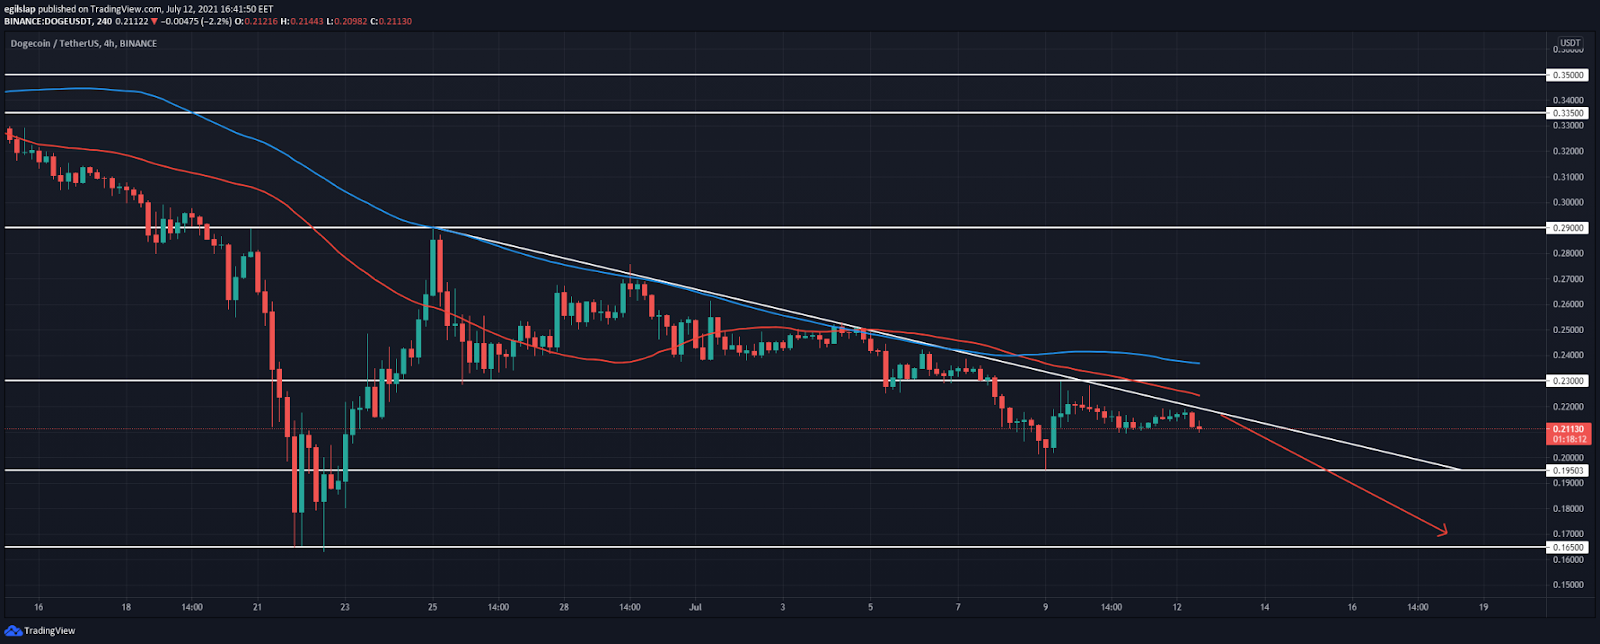 Dogecoin price analysis: DOGE retests descending trendline again, prepares for another spike lower?